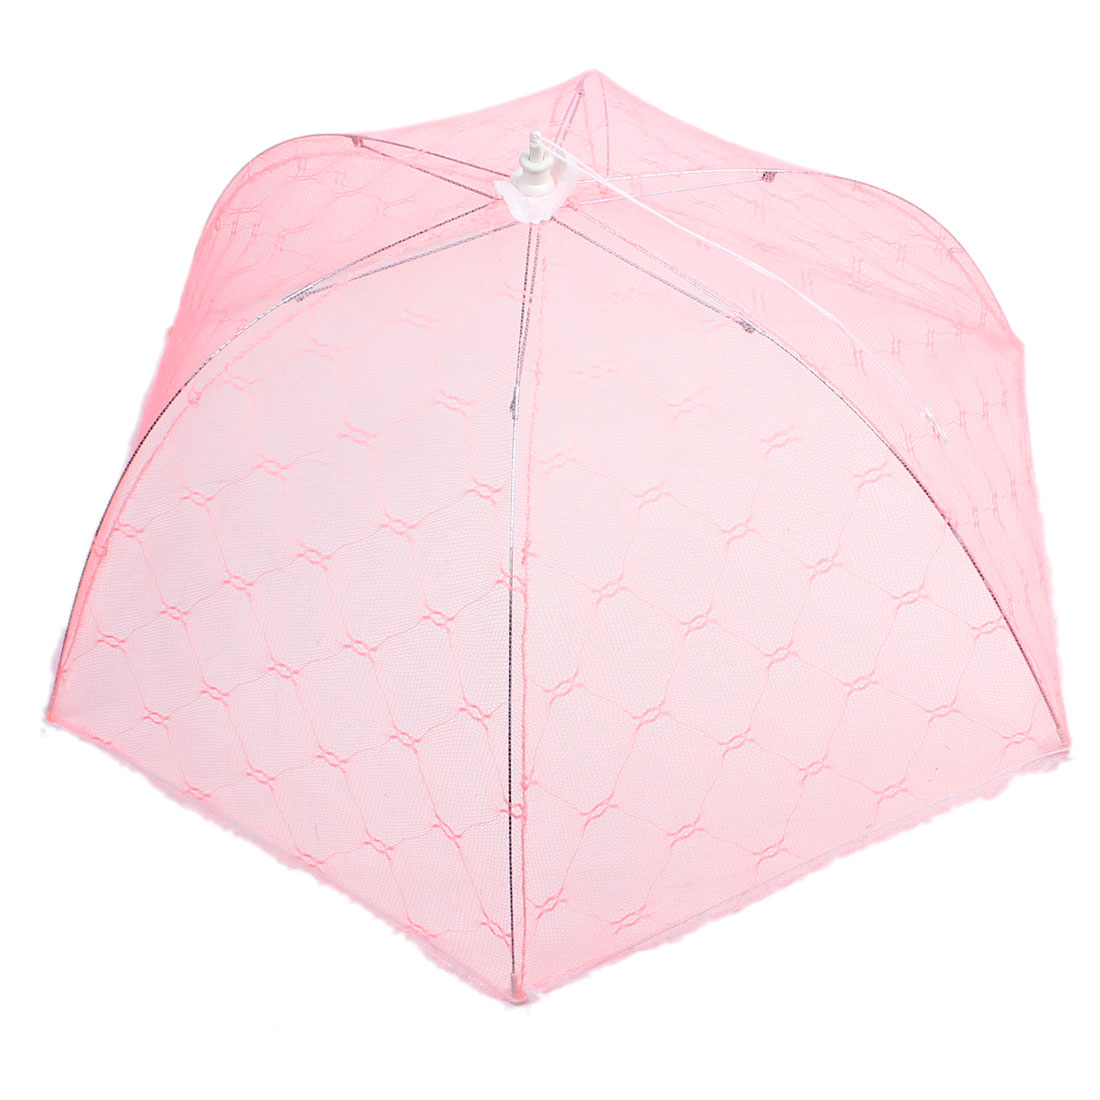 Picnic Camping Foldable Pink White Food Cover Umbrella Tent